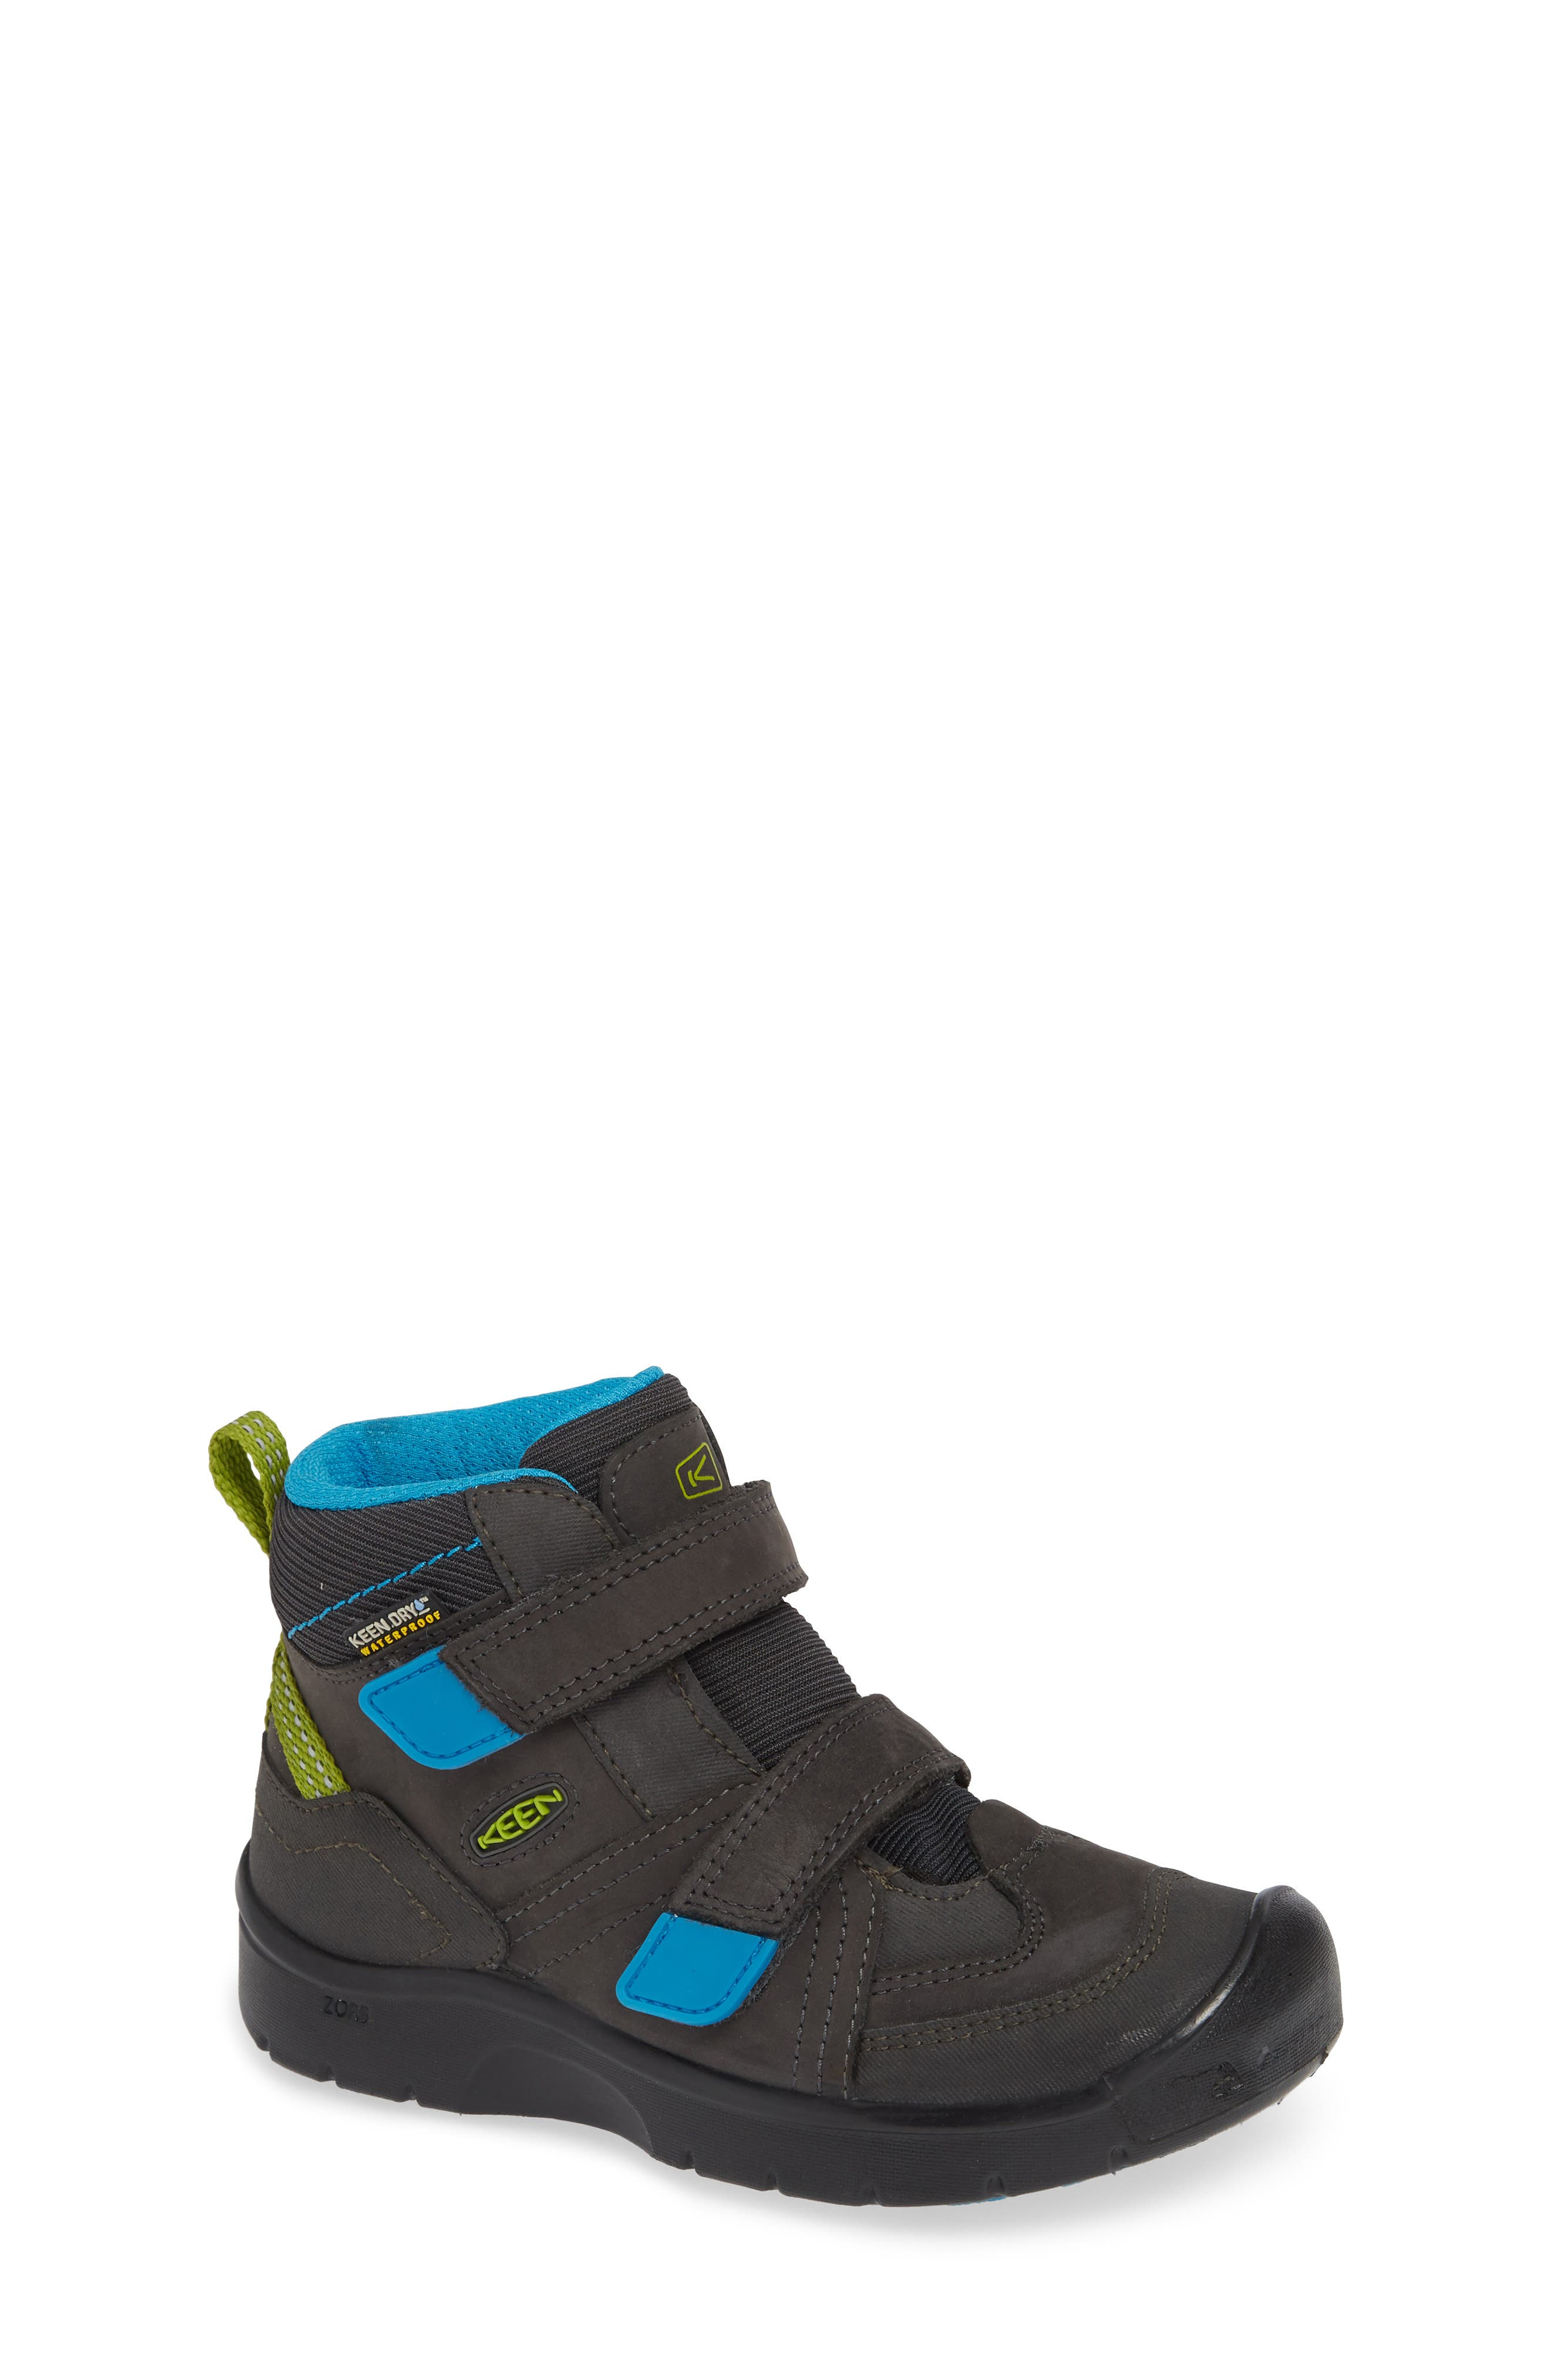 Hikeport Strap Waterproof Mid Boot,                         Main,                         color,